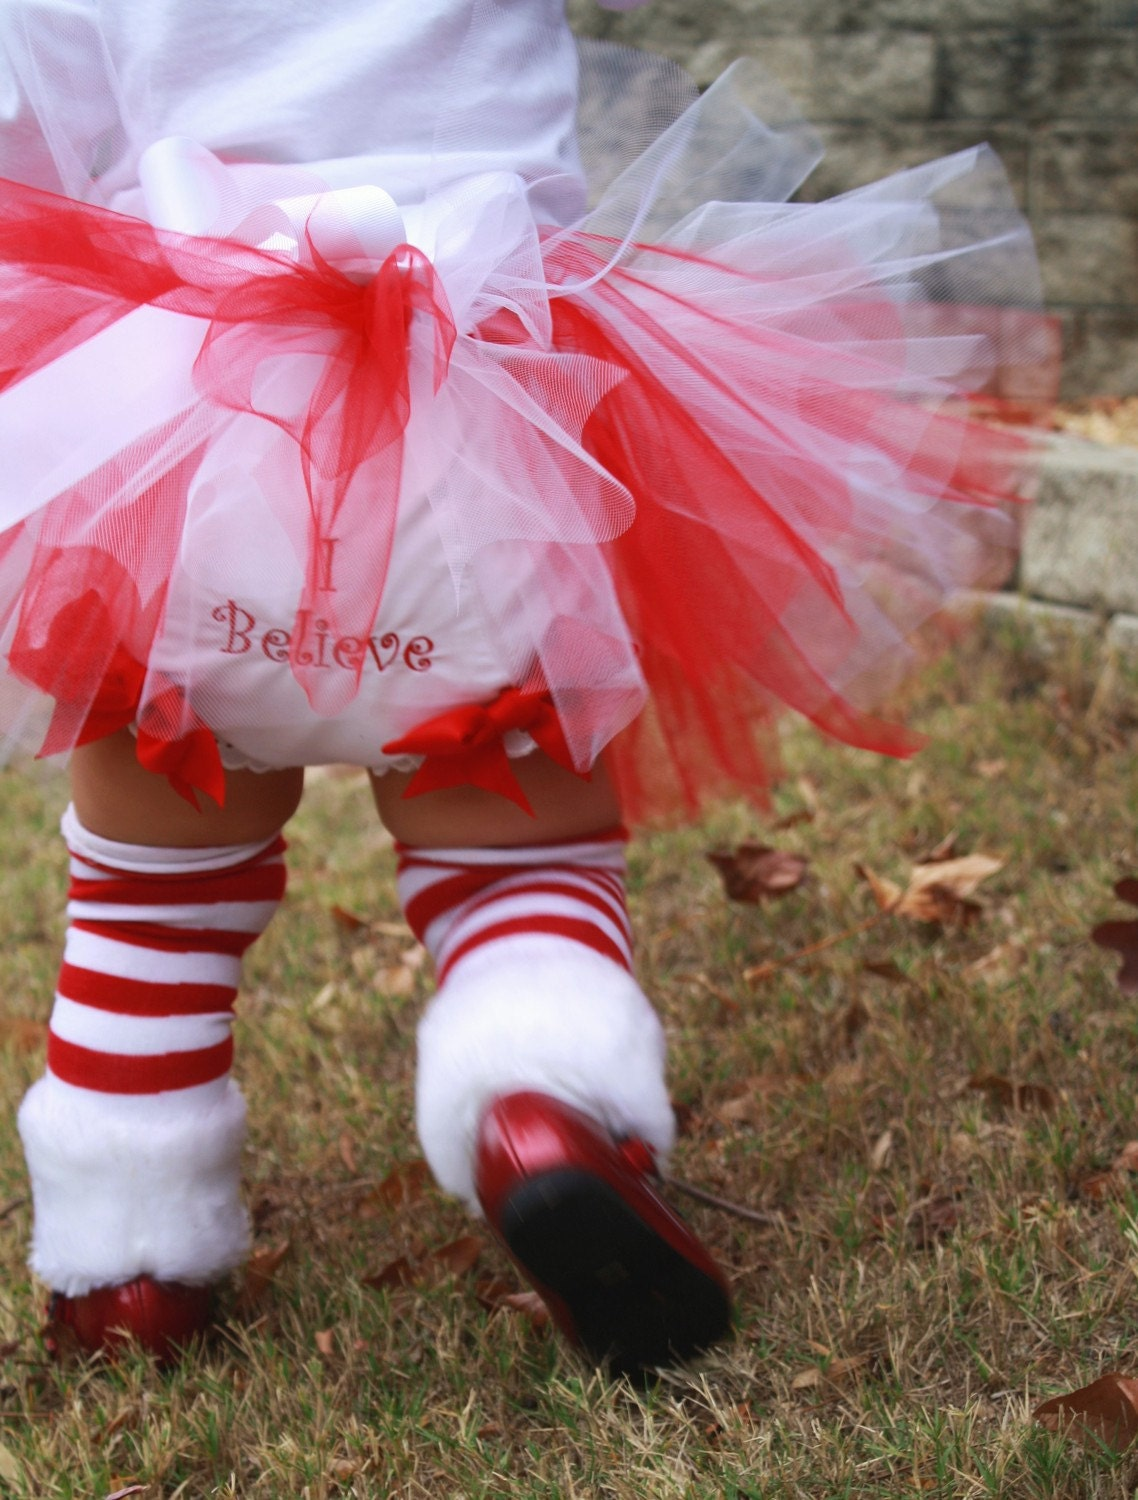 I BELIEVE- Diaper Covers or Bloomers